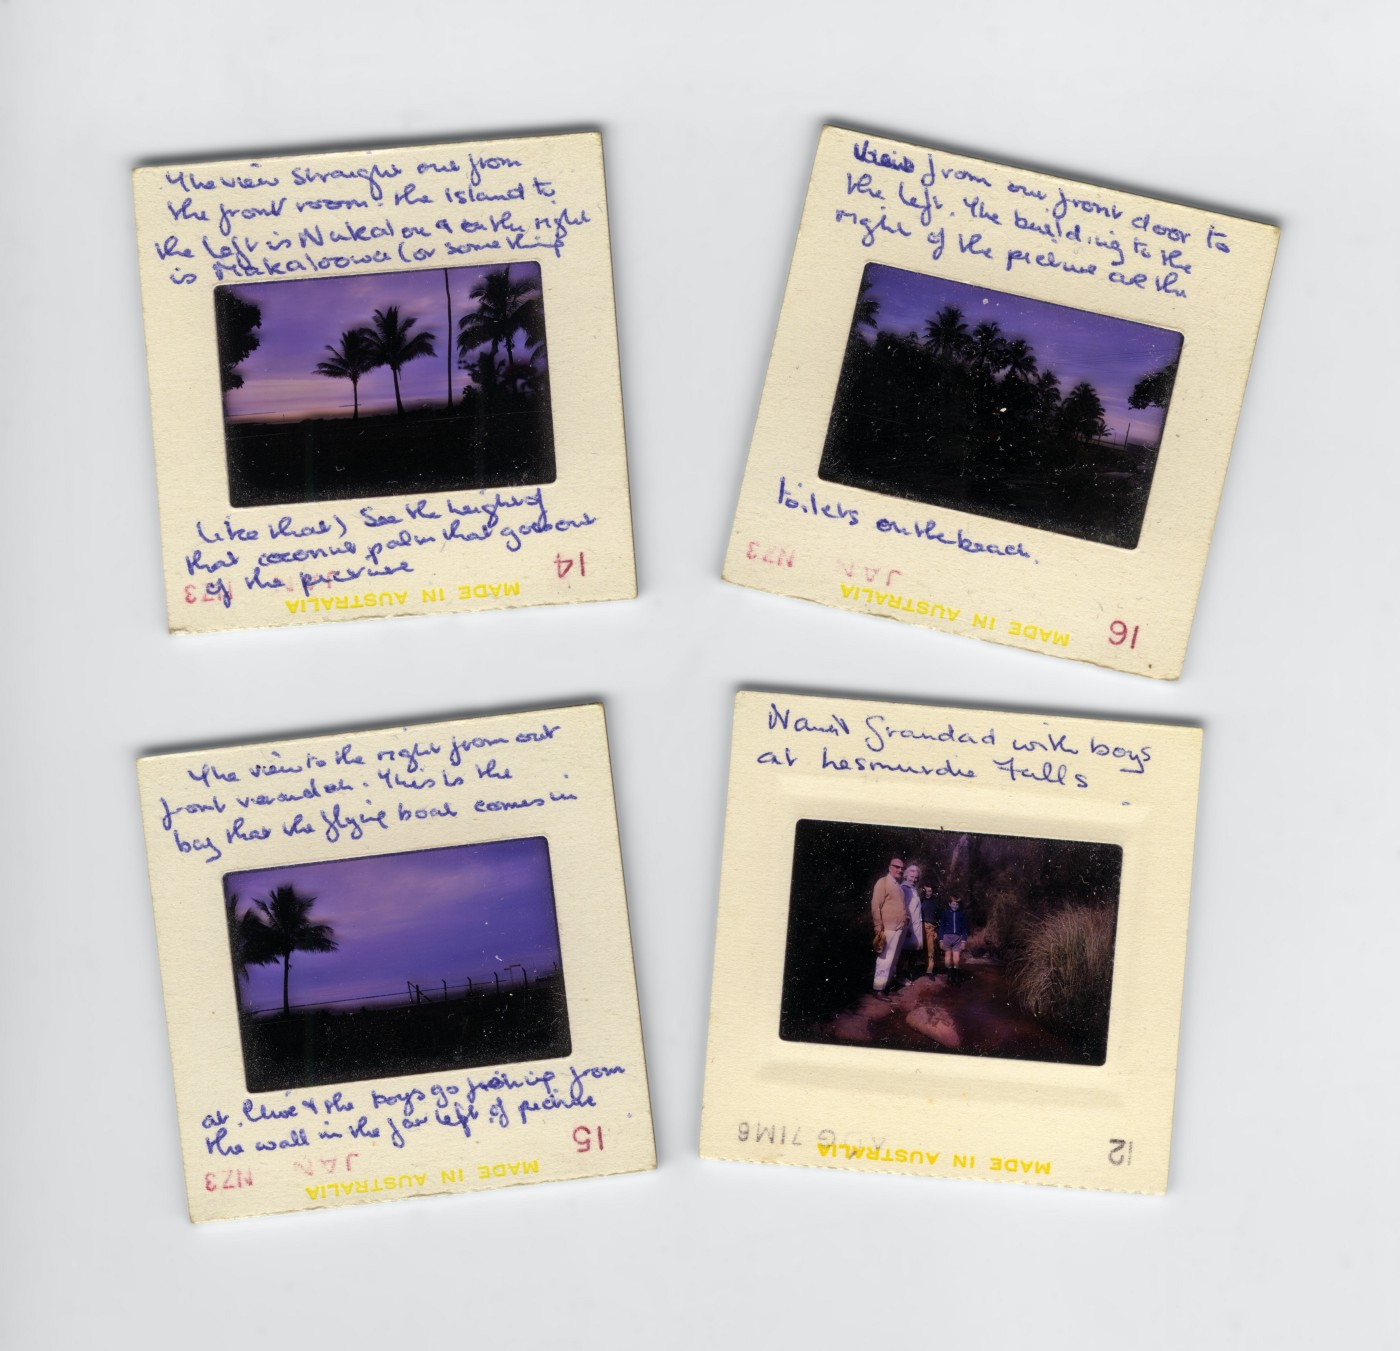 4 photographs that are stuck in photo frames that capture the sunset and different memories. Hand written notes and annotations about the process are along the frame outside of the picture.